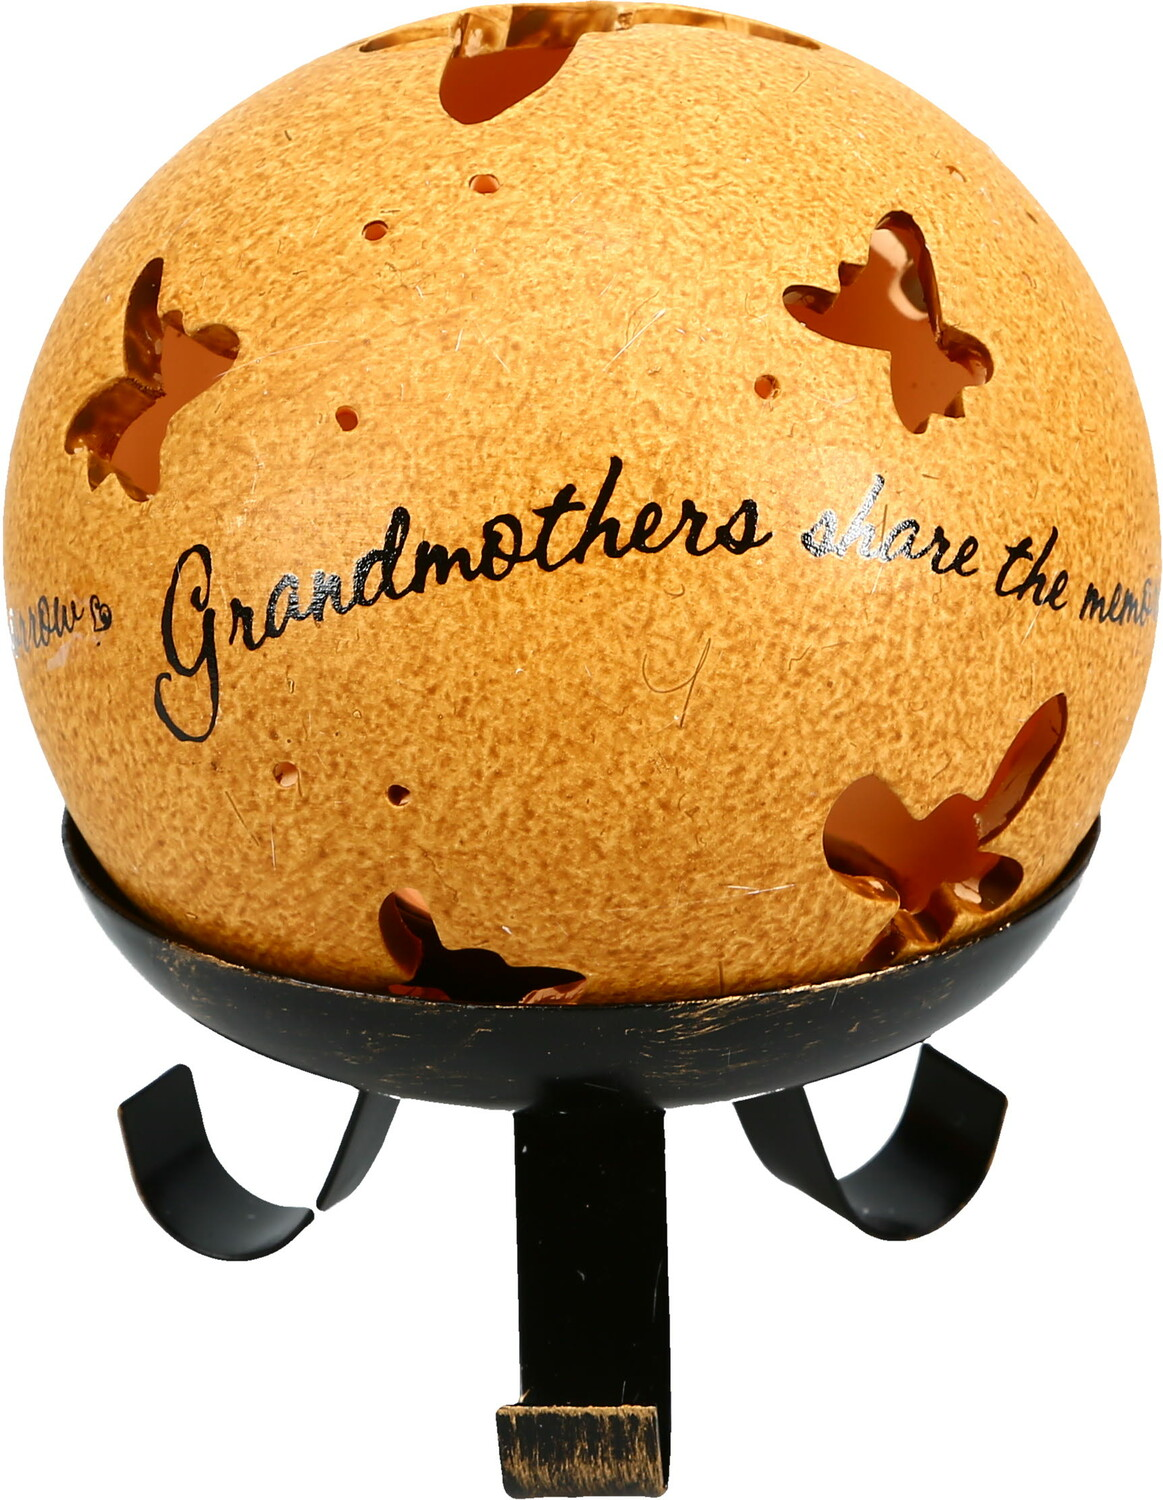 "Grandmothers by Comfort Candles - Grandmothers - 4"" Pierced Round Candle Holder"